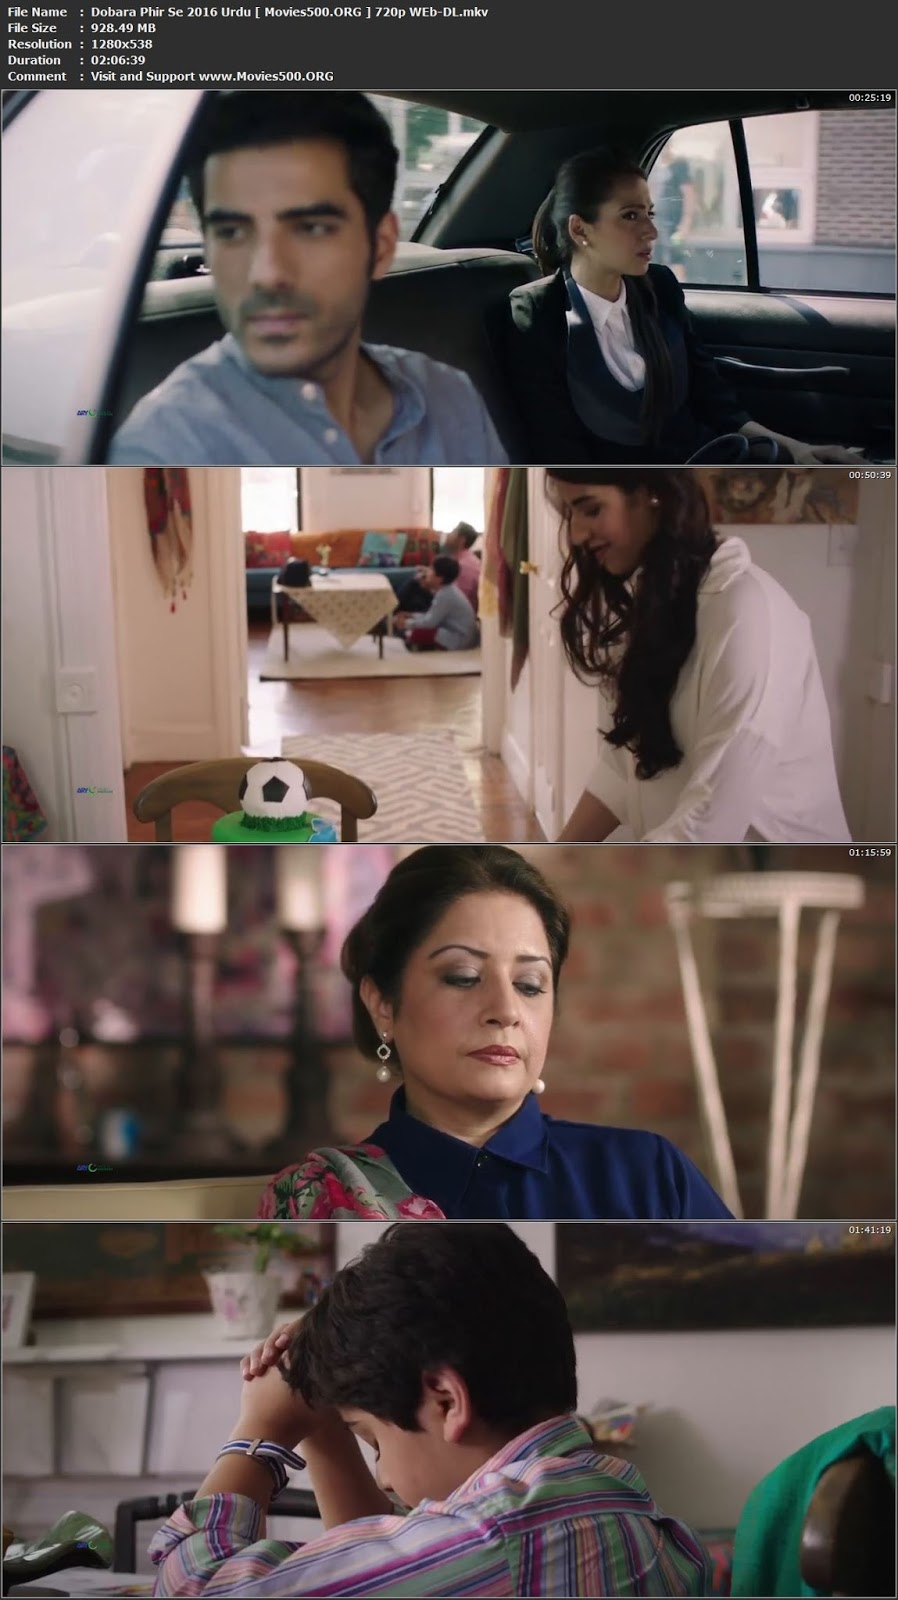 Dobara Phir Se 2016 Urdu Pakistani Download WEB DL 720p at movies500.info